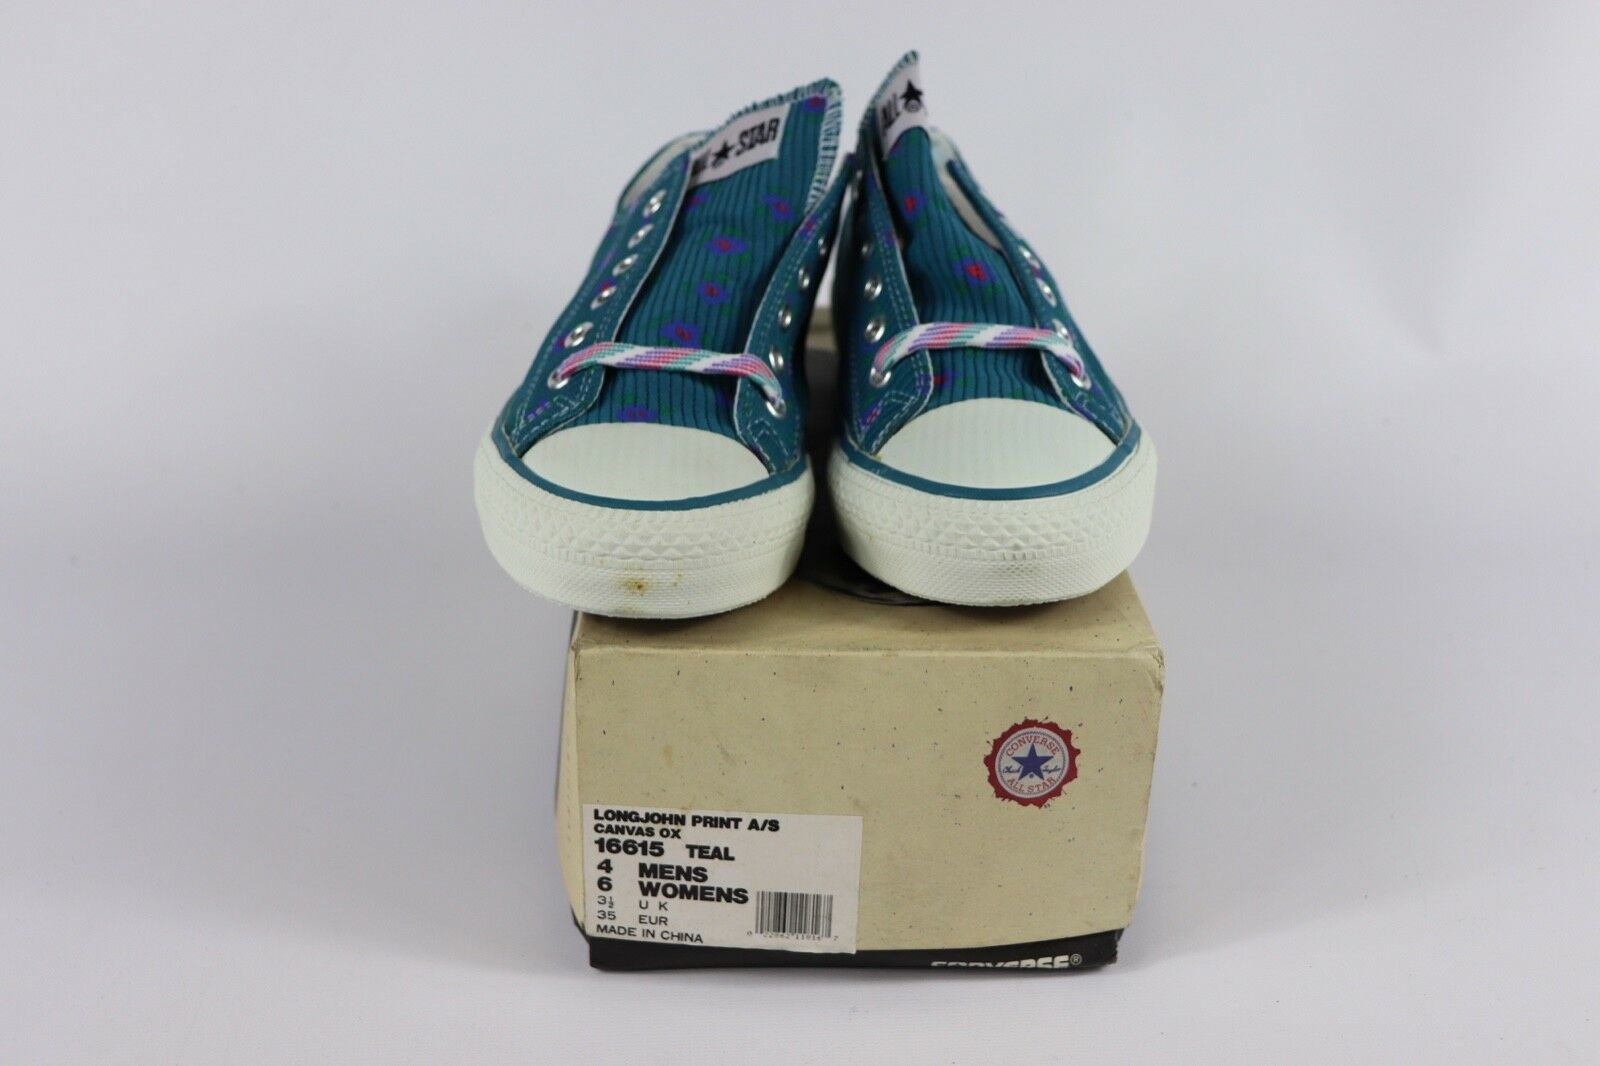 Vtg New Converse Mens 4 Wmns 6 Longjohn Print A/S Canvas Ox Chuck Taylor Shoes image 6